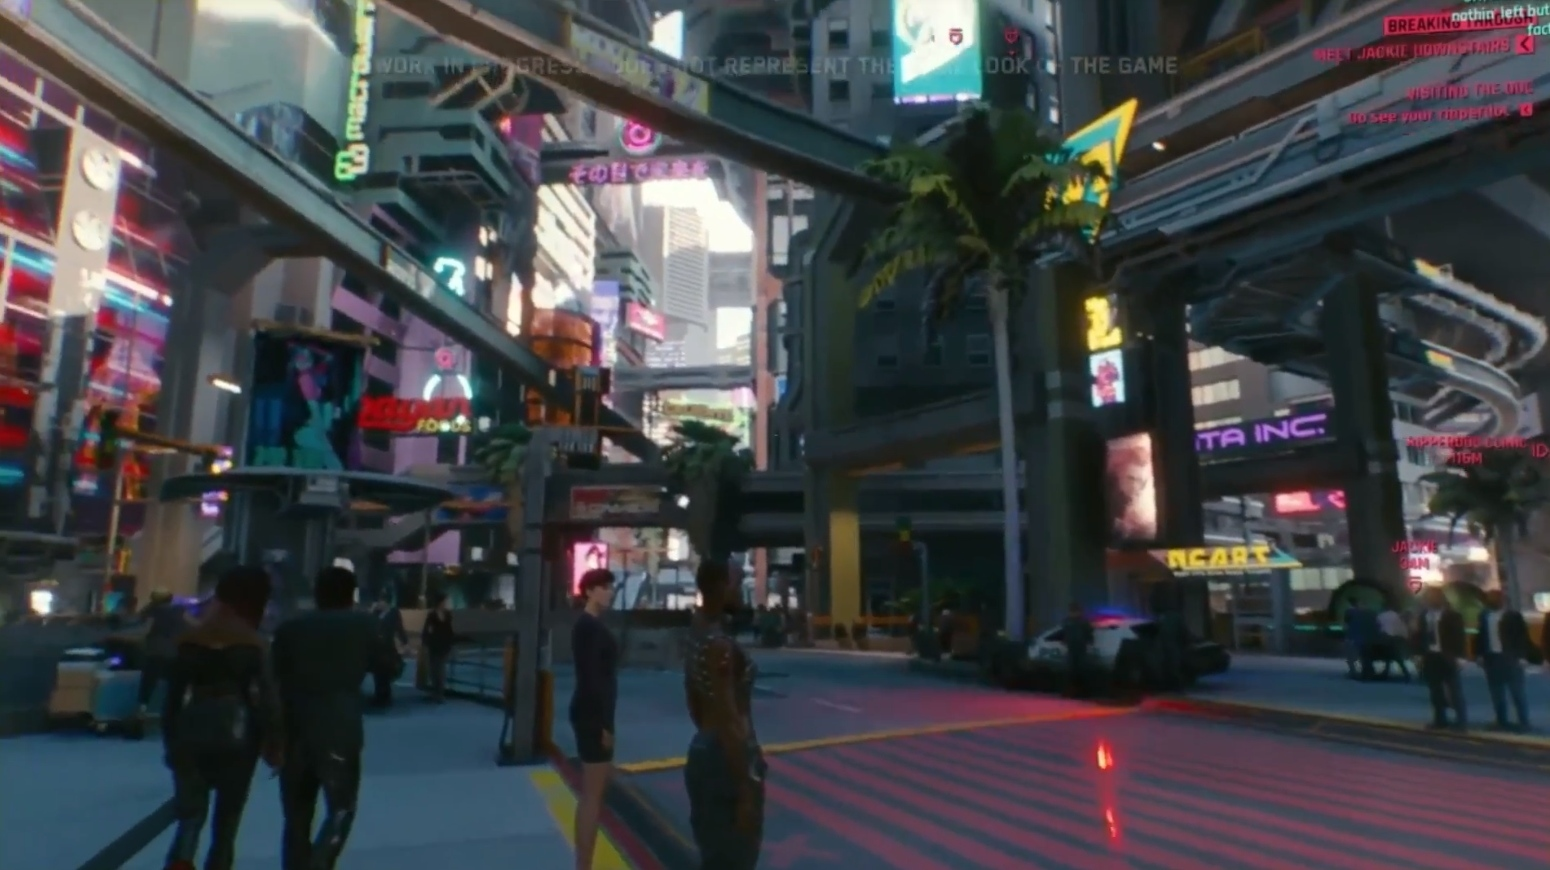 Cyberpunk 2077 Shows 48 Minutes Of Gameplay Feed4gamers